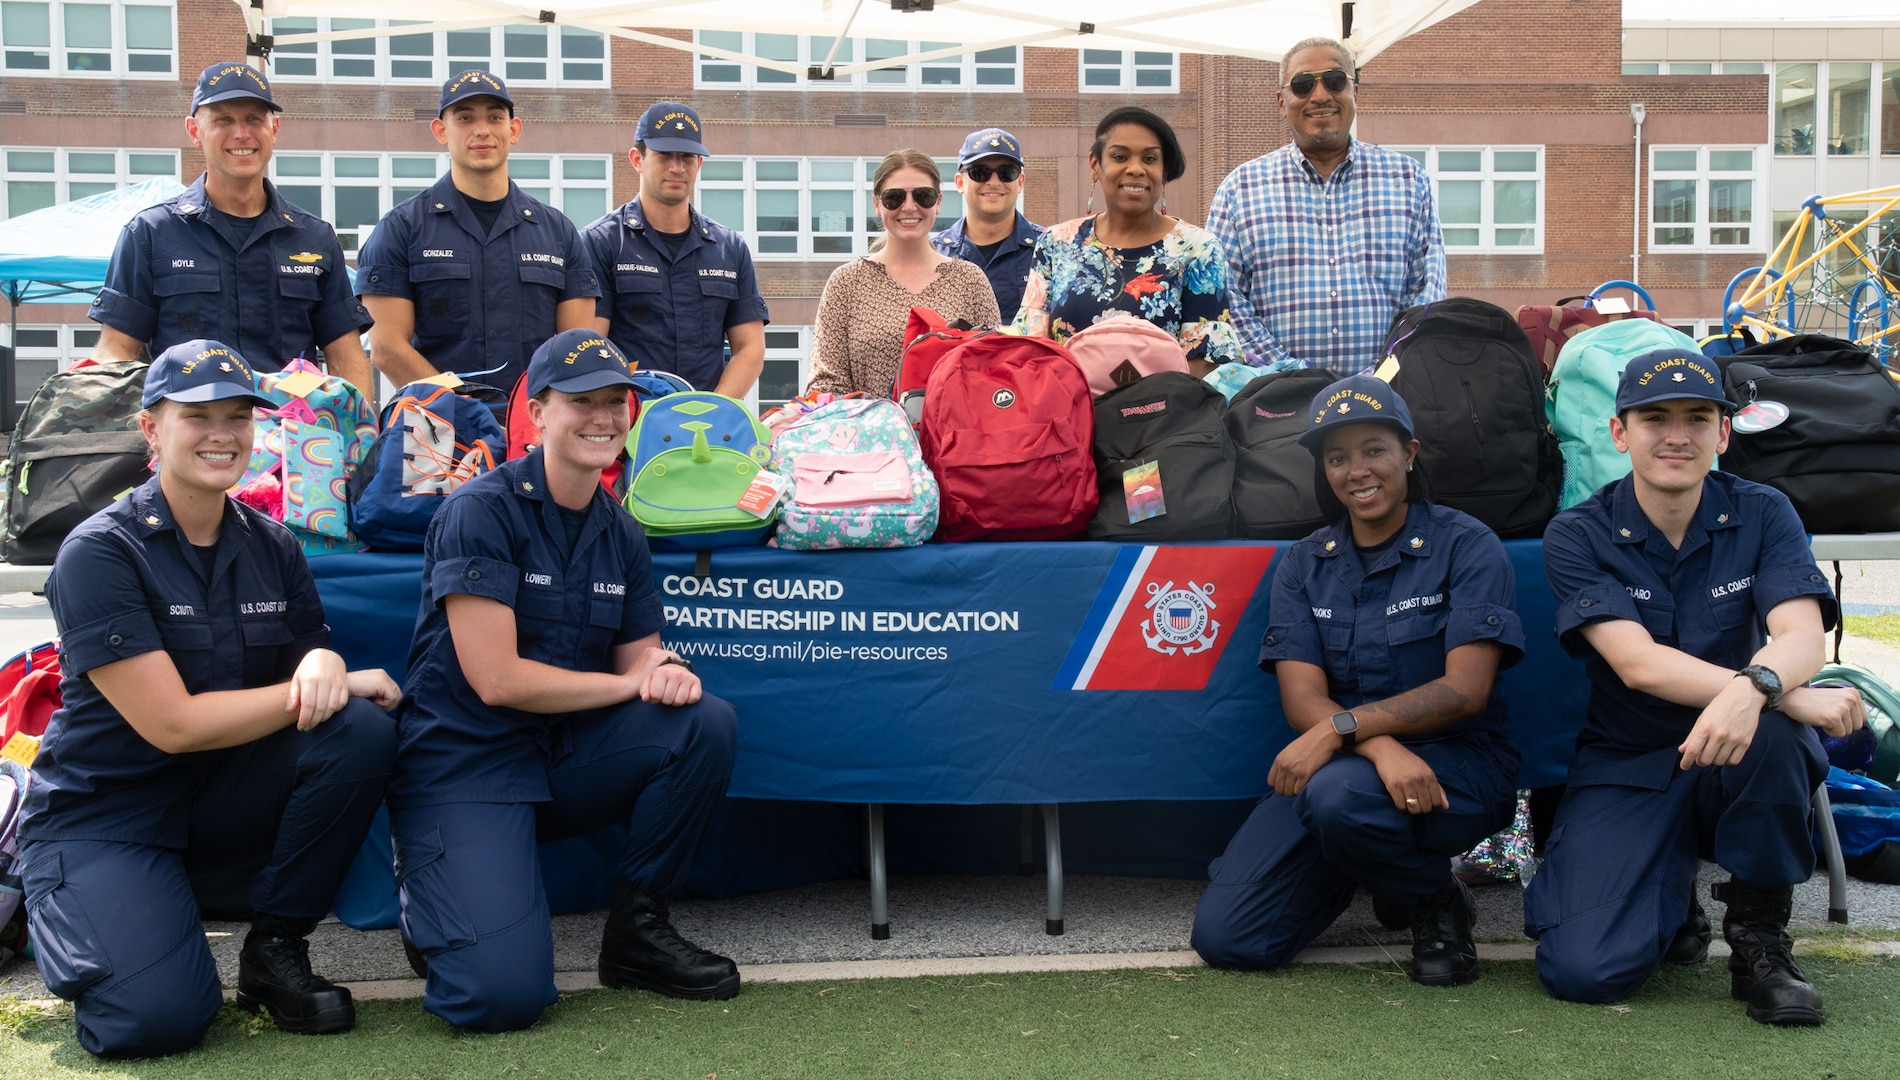 Chaplain Andrew Hoyle (standing, back left), Coast Guard headquarters' Partnership in Education (PIE) coordinator, along with Coast Guard and Department of Homeland Security (DHS) volunteers, pose in front of a table full of backpacks stuffed with school supplies at Anita J. Turner Elementary School during a back-to-school night event, August 26th. Hundreds of Coast Guard and DHS volunteers donated equipment or helped pack backpacks with schools supplies to support the D.C. community through St. Elizabeth's Back-to-School backpack and supply drive (Coast Guard photo by Patrick Ferraris).